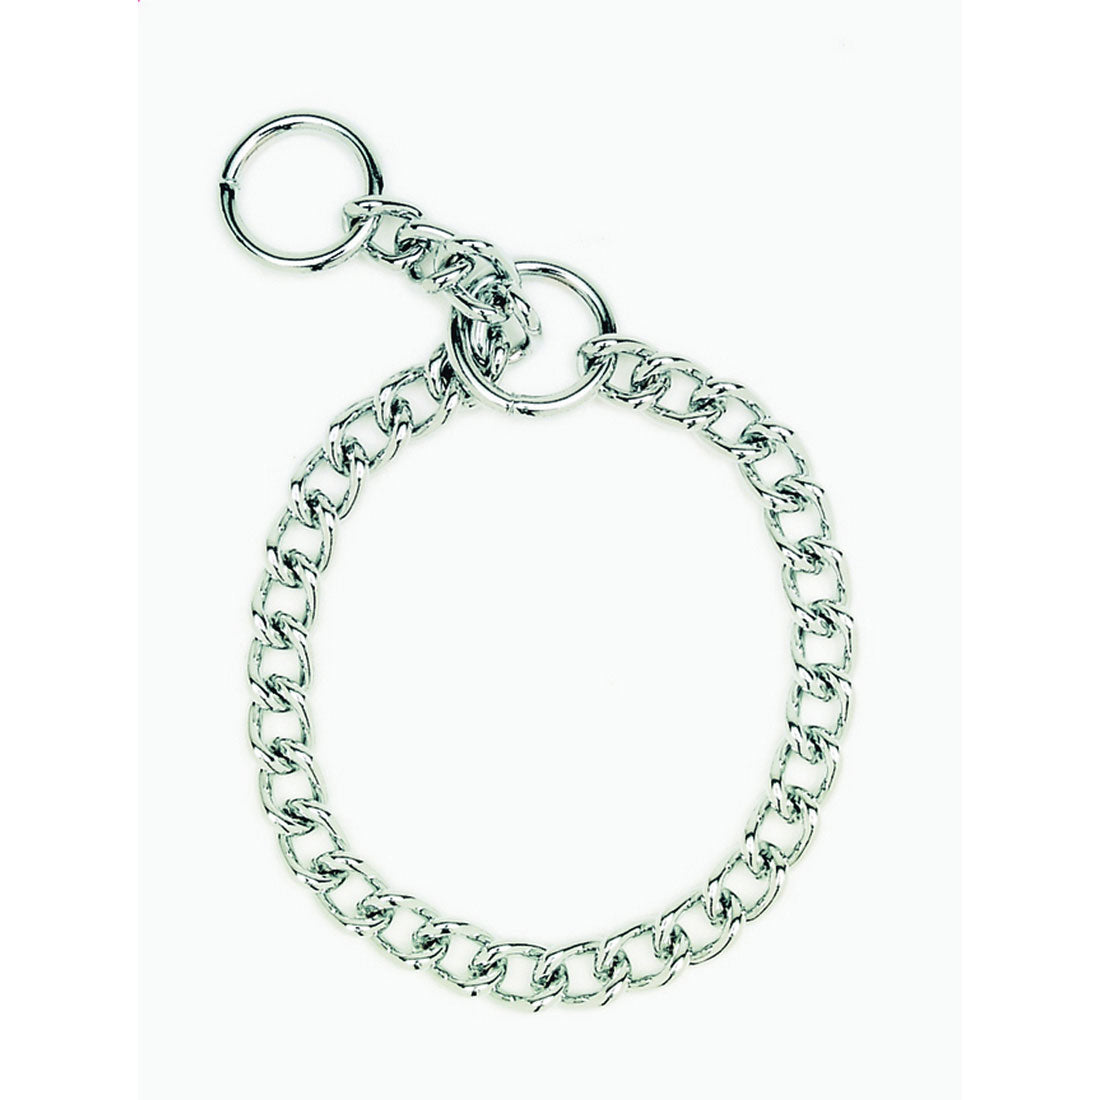 "Coastal Pet Products Herm. Sprenger Dog Chain Training Collar 2.0mm 22"" Silver Dog Collars and Leashes - London the Local"